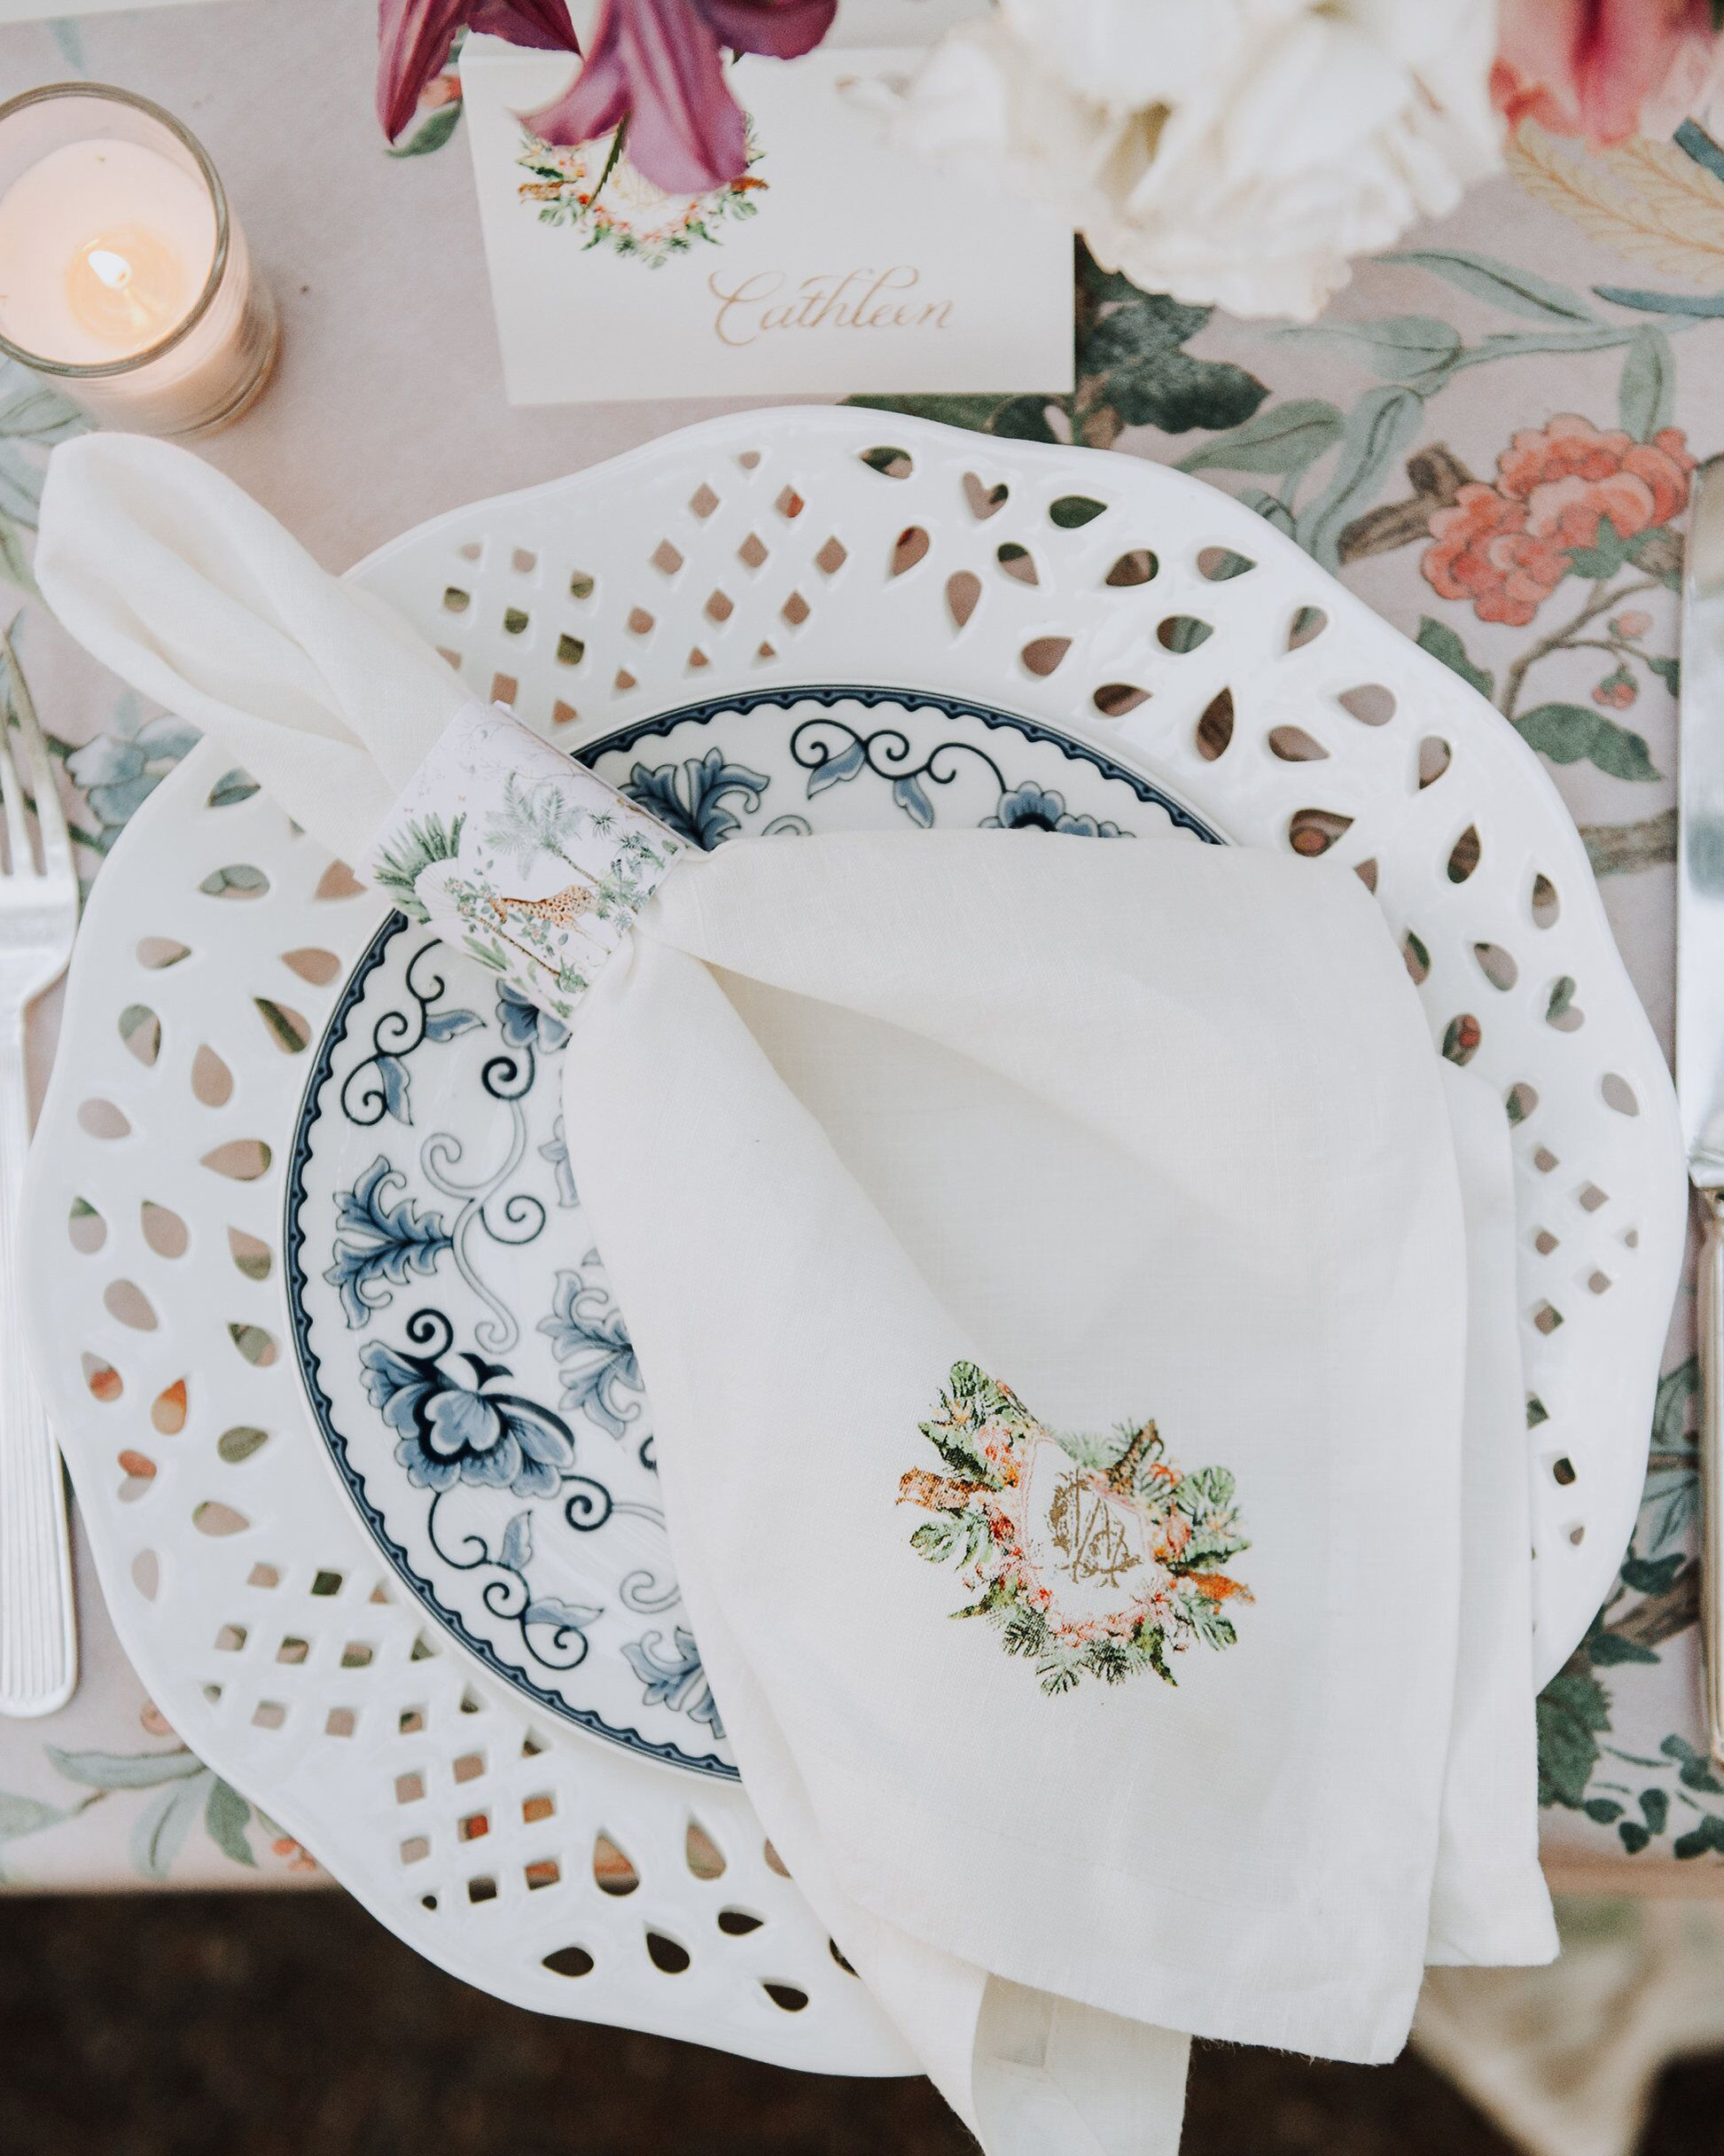 cathleen and winston wedding place setting with monogrammed napkin and napkin ring